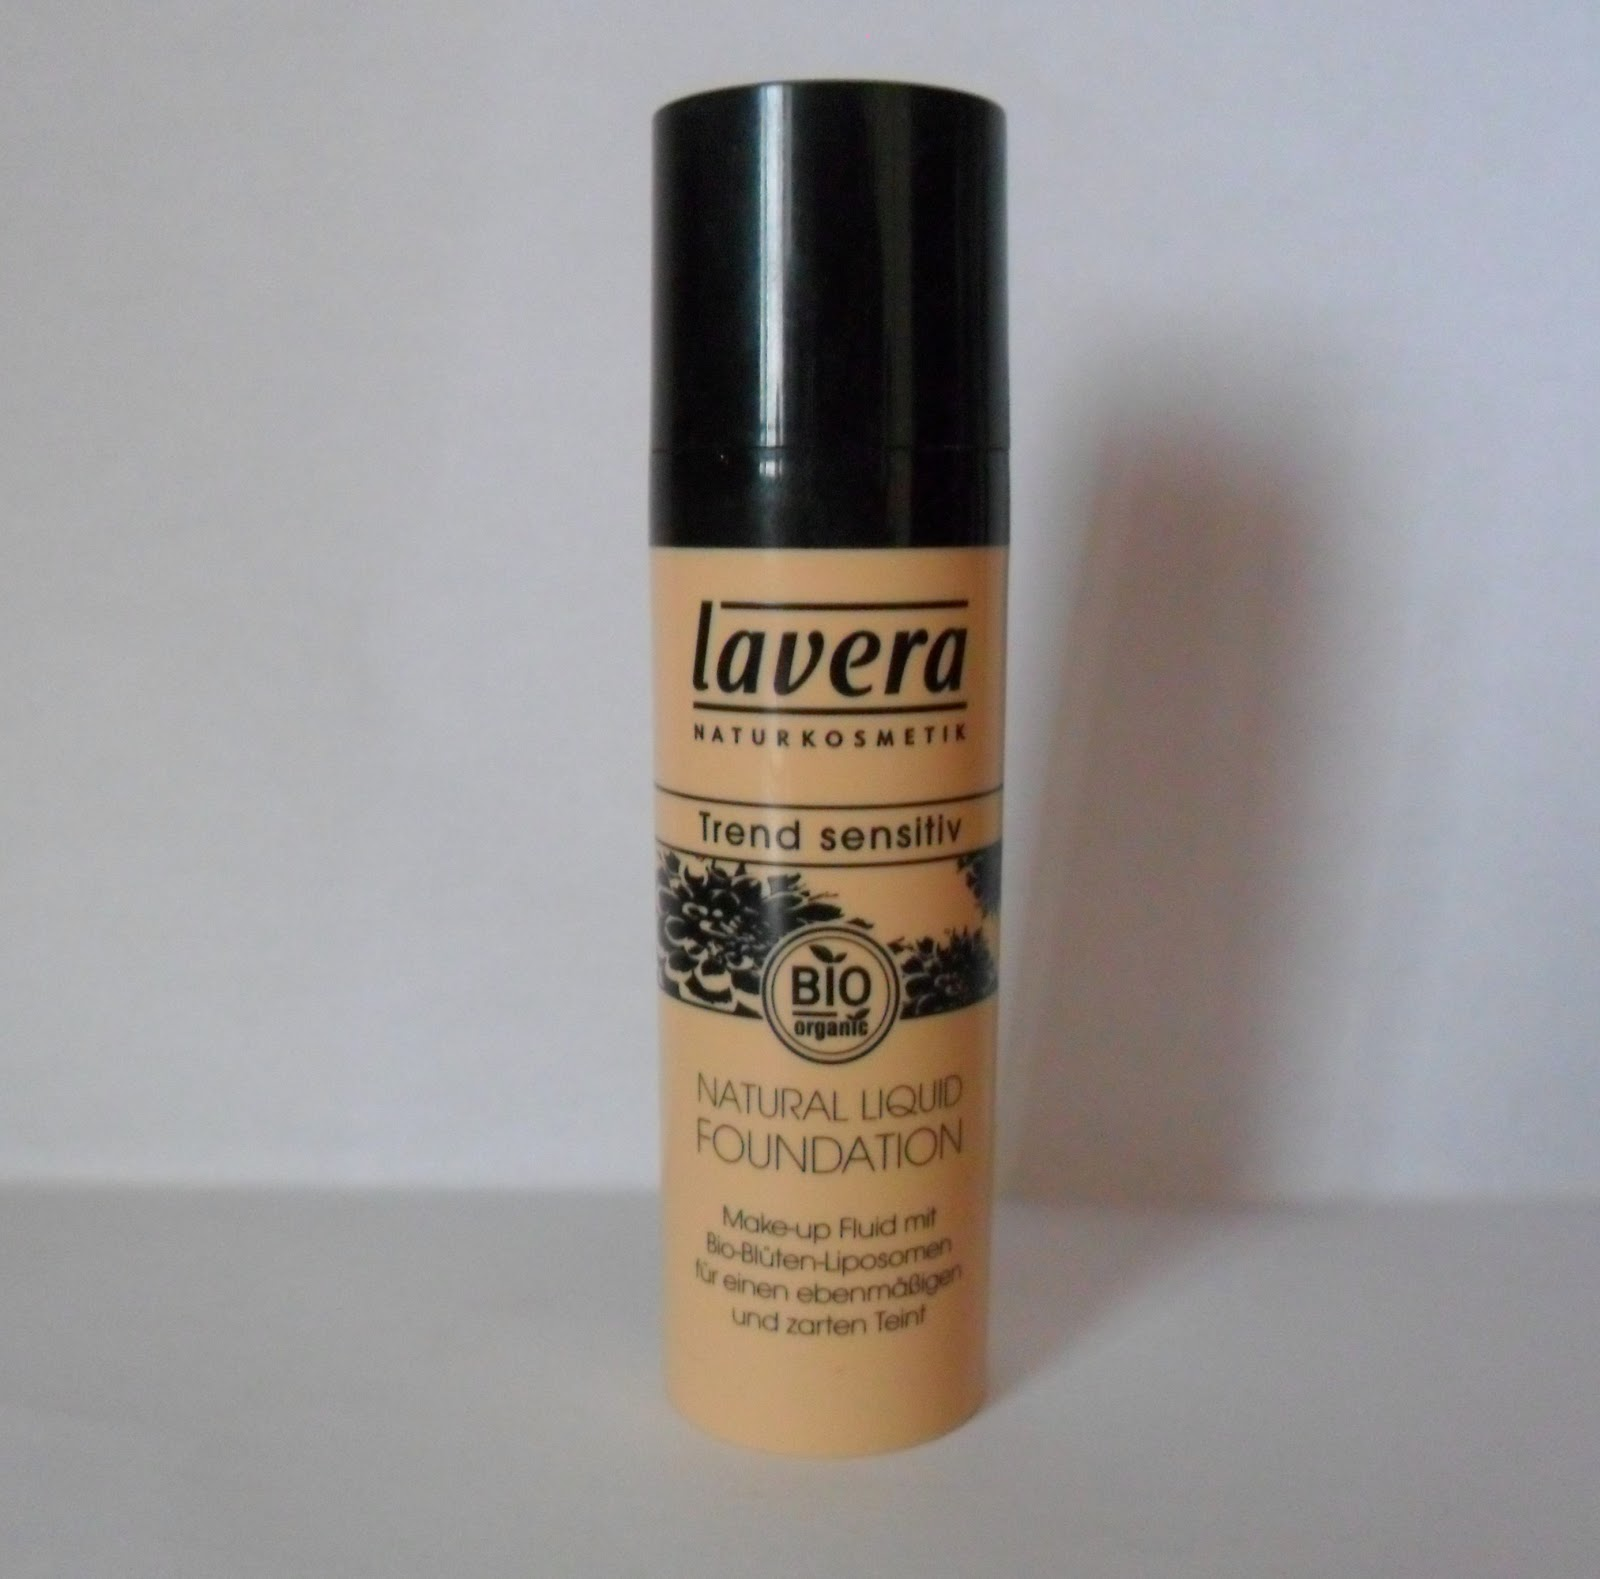 Cheap chic ecco verde lavera natural liquid foundation for Verde rame quando usarlo